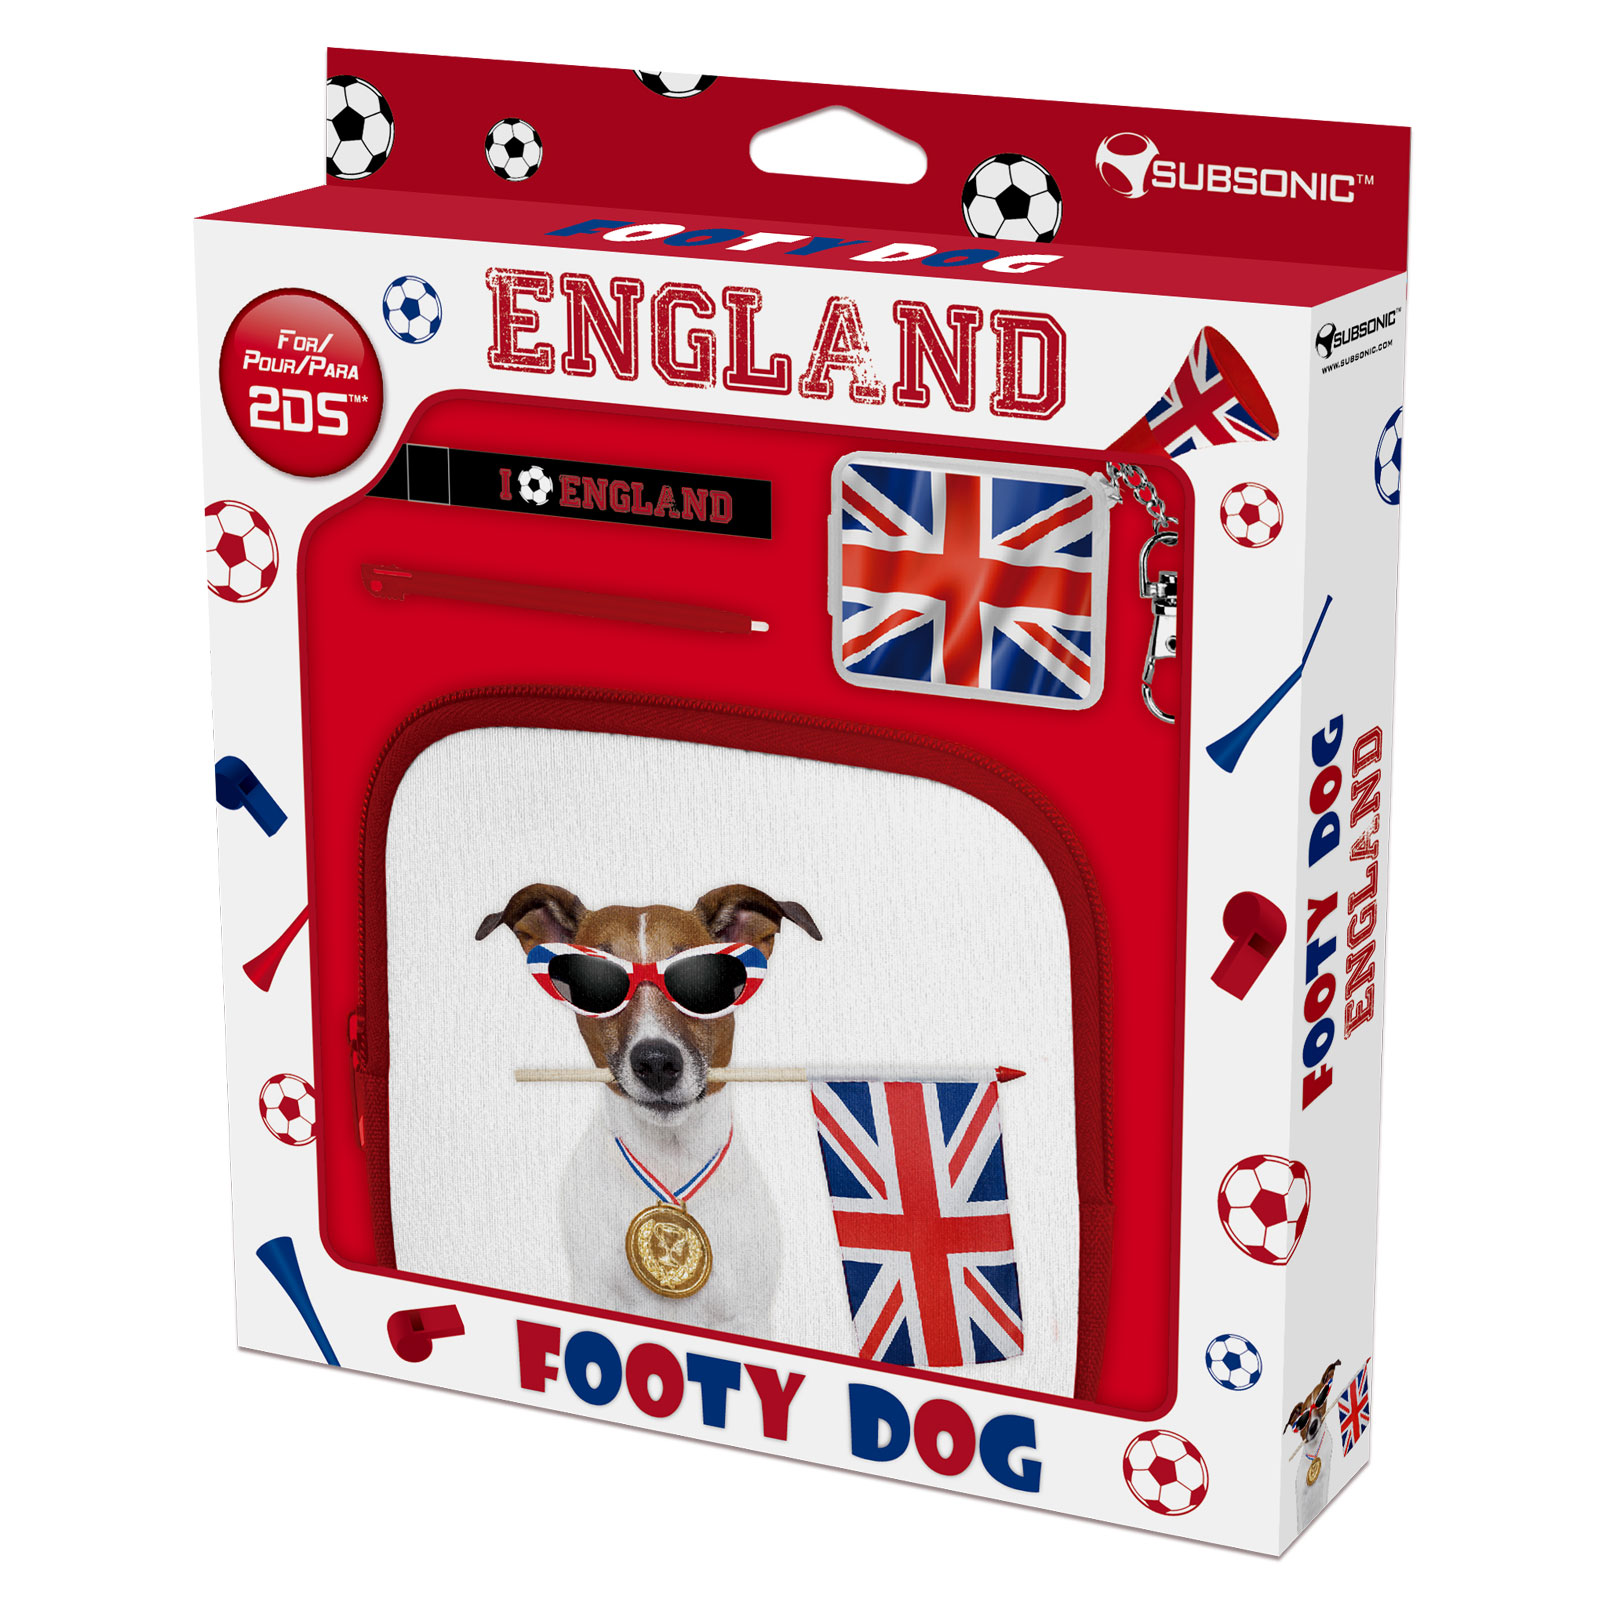 Subsonic Footy Dog England Nintendo 2ds Accessoires Ds